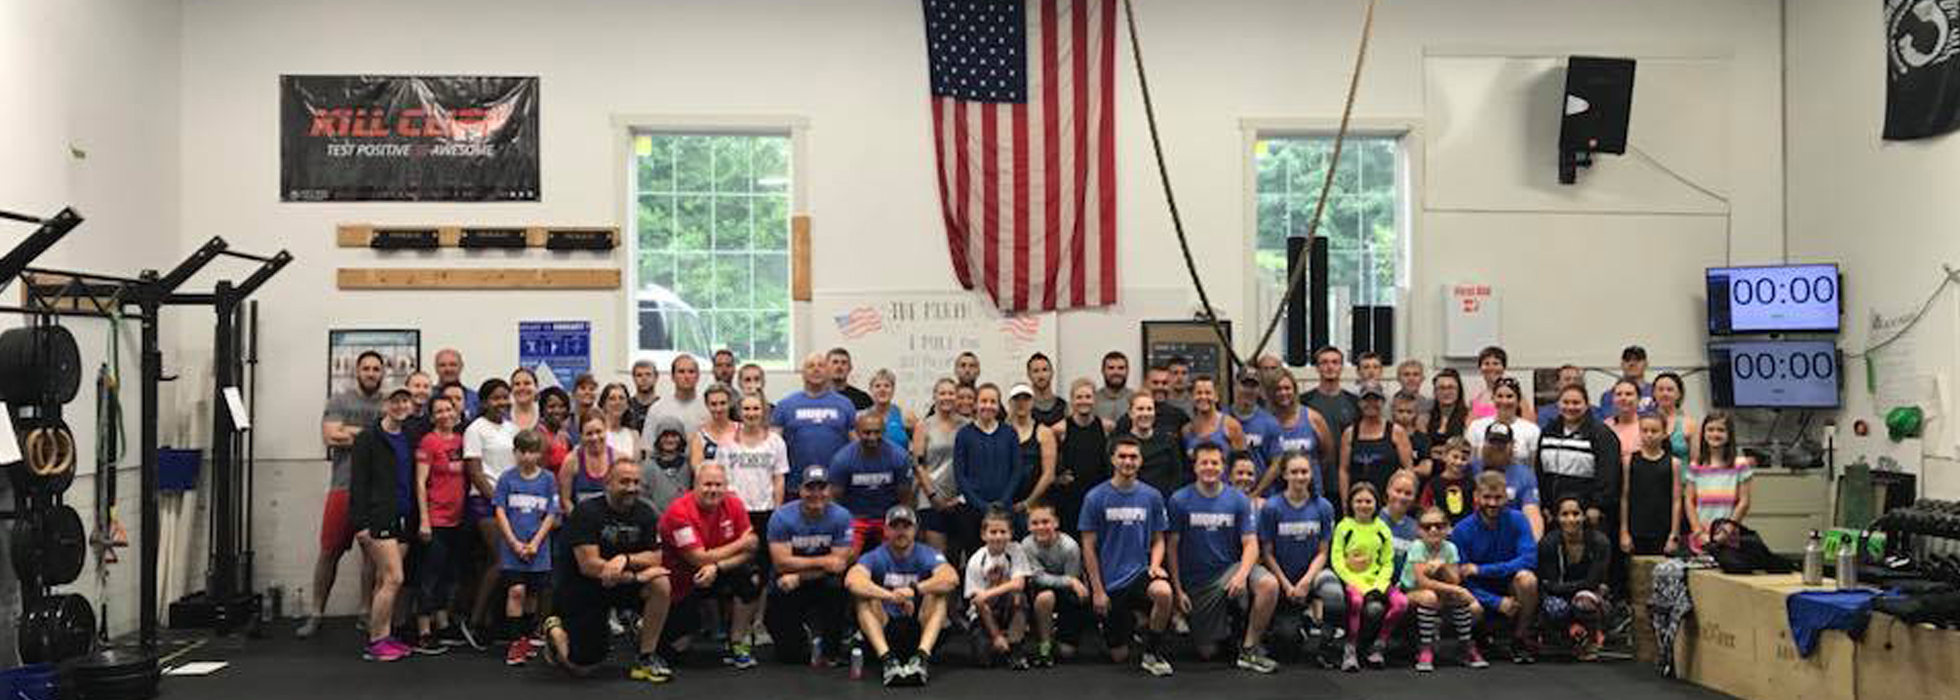 CrossFit Training in Colora MD, CrossFit Training near Rising Sun MD, CrossFit Training near Perryville MD, CrossFit Training near Oxford MD